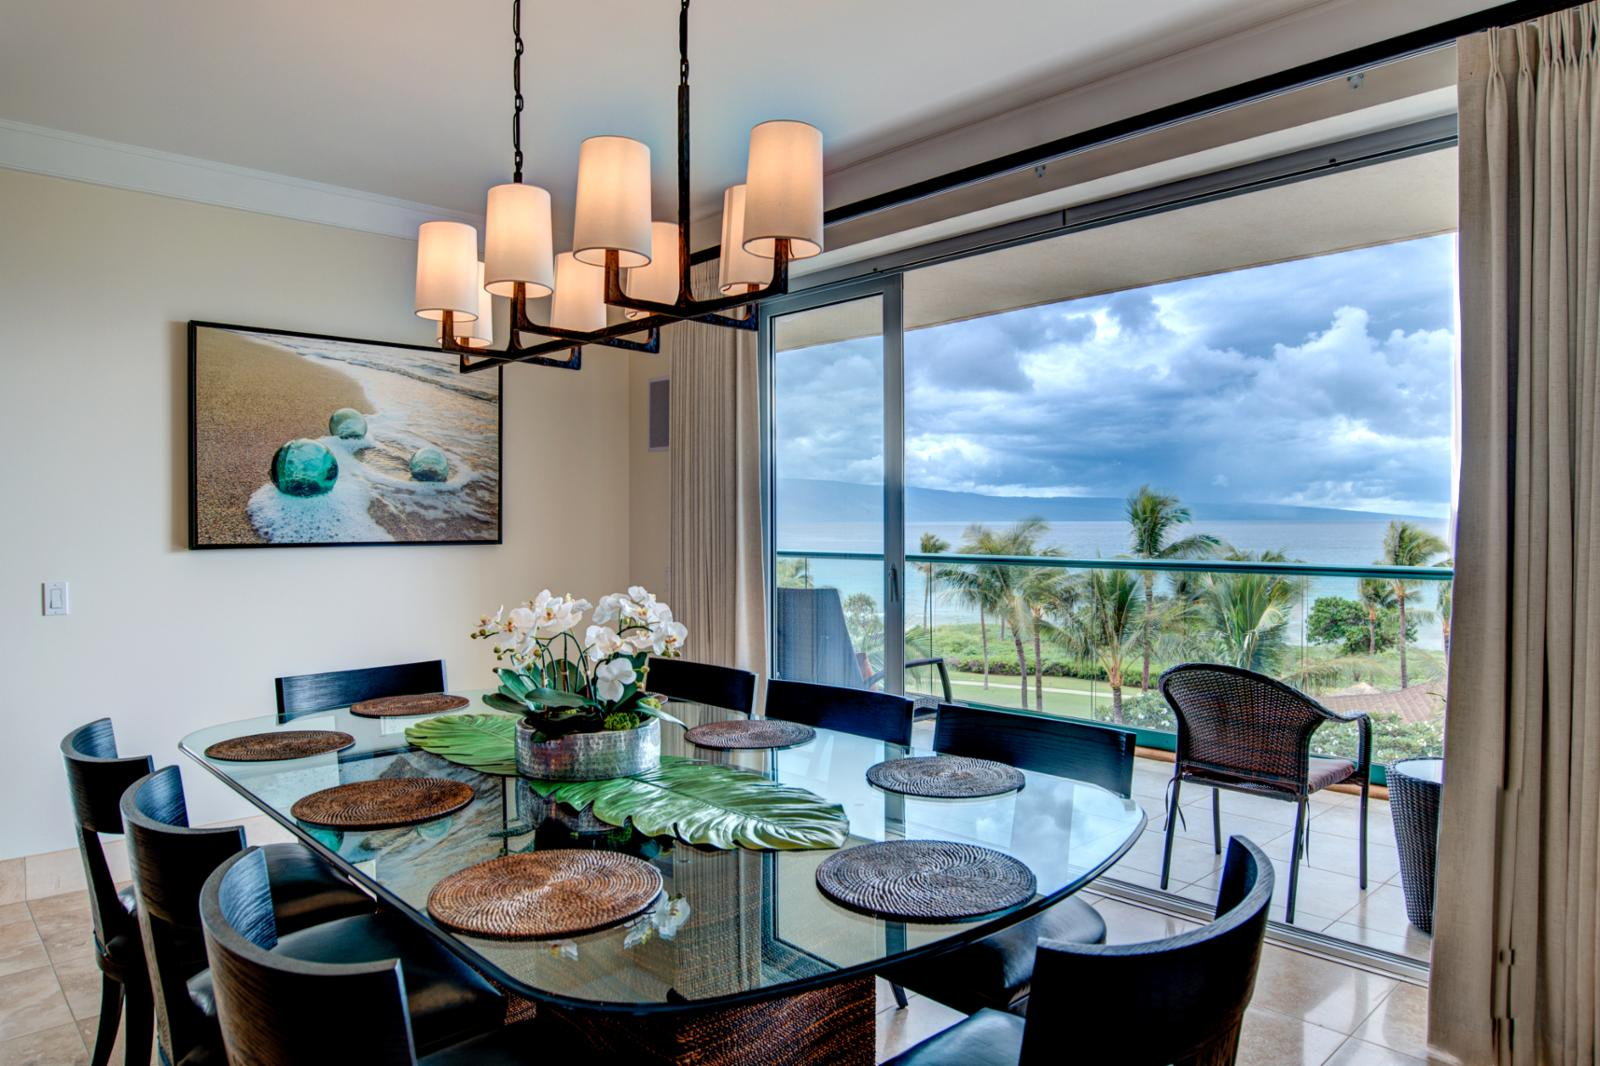 Dine in your own luxury oasis, consider a private chef dinner during sunset with this expansive views